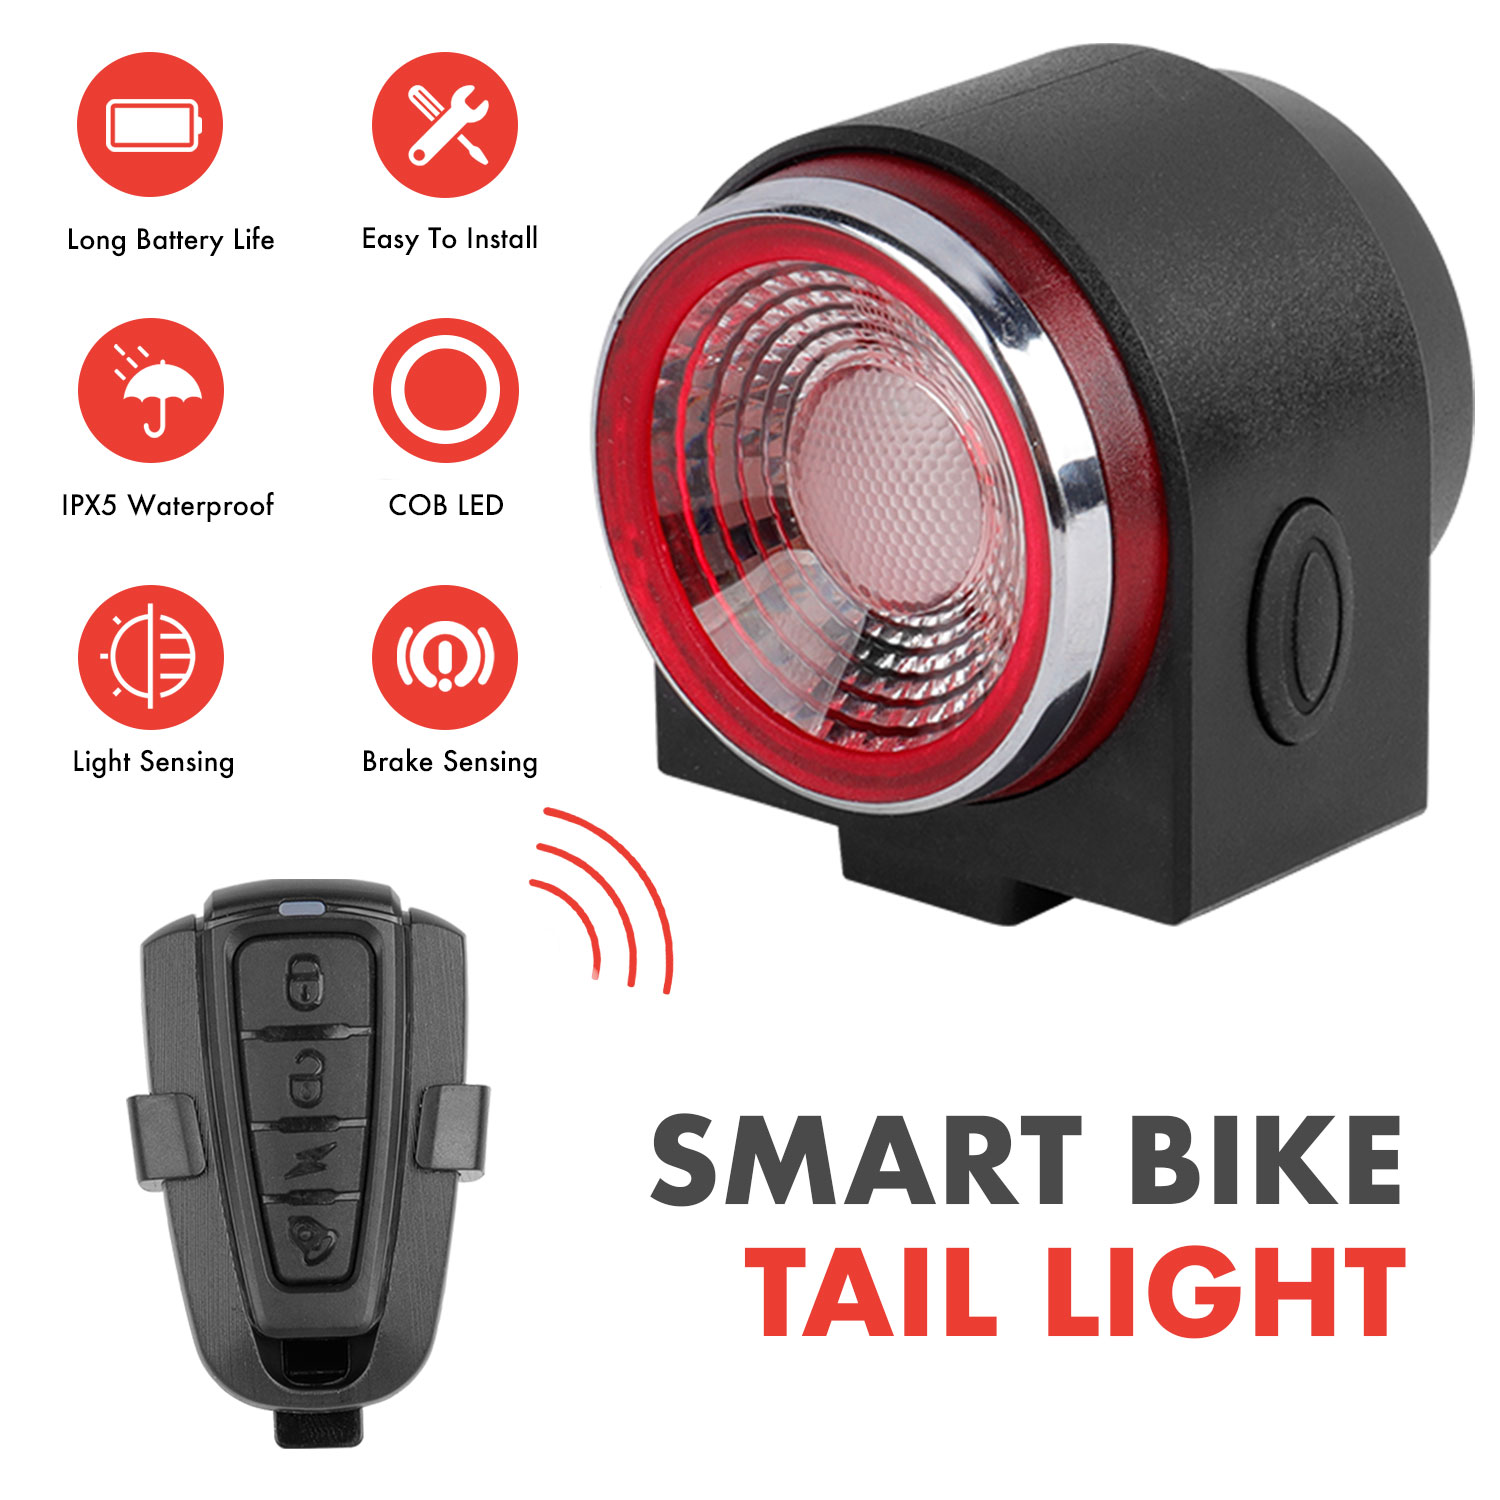 A8 Smart Bike Tail Light With Remote Control IPX5 Waterproof USB Rechargeable Cycling Light W/ Intelligent Chip Anti Thief Alarm